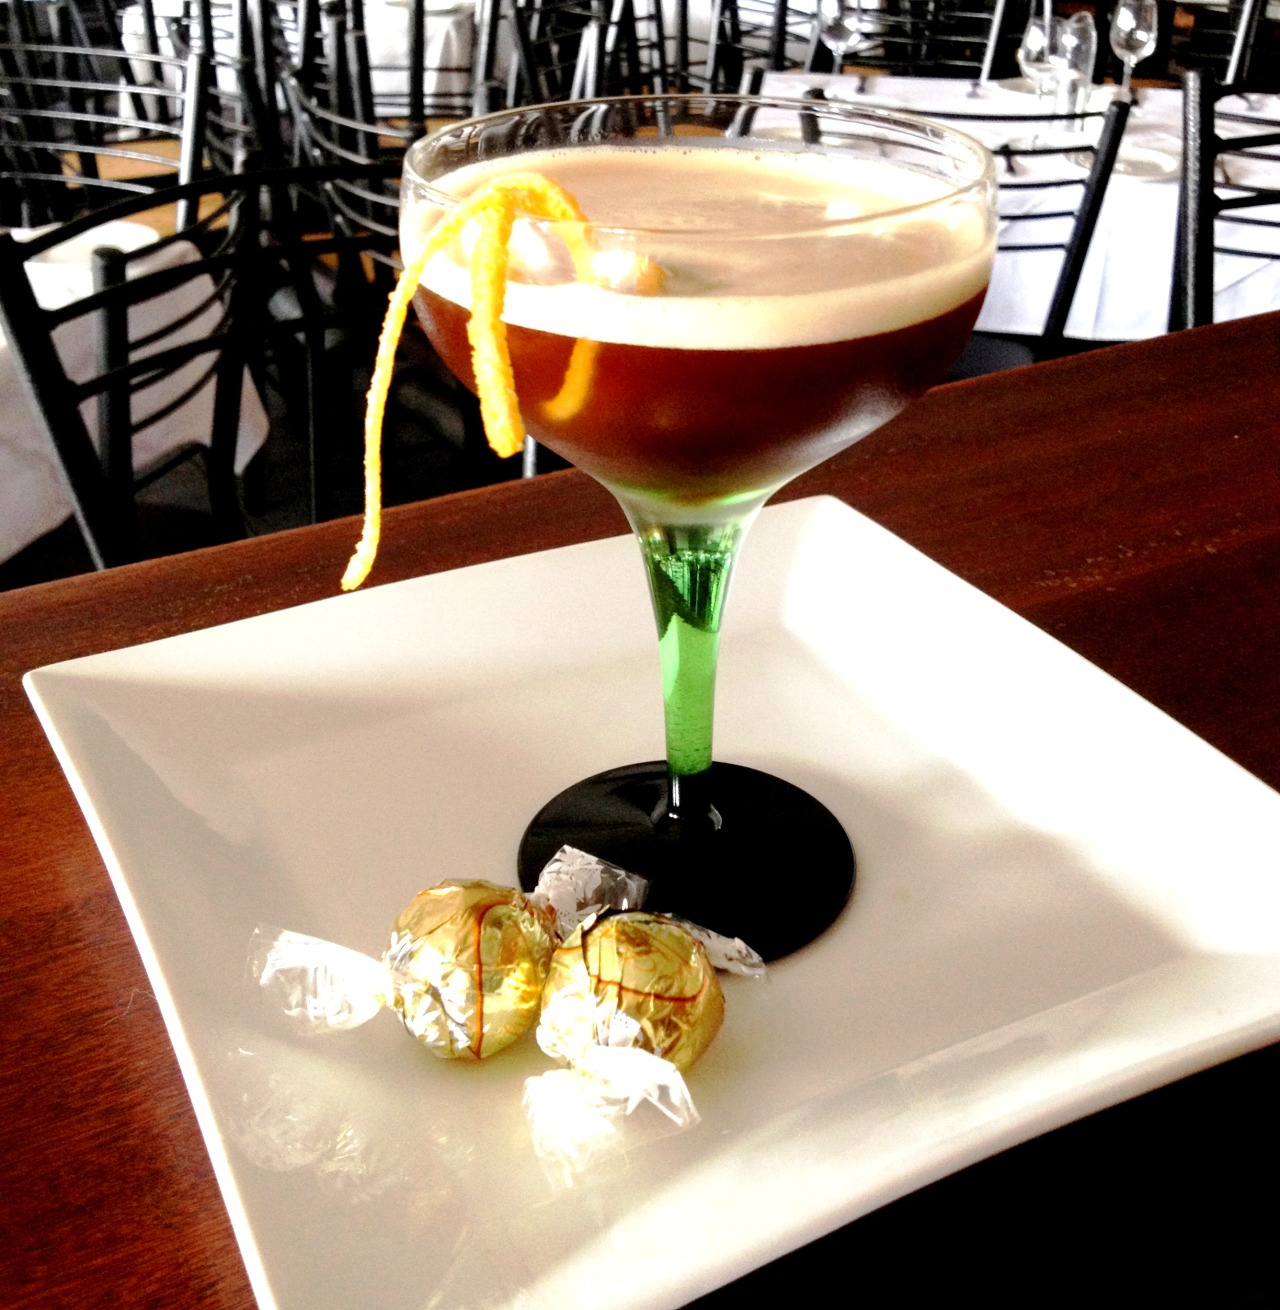 Jalisco Espresso Glass: CoupeGarnish: Orange ZestPair: White Lindt chocolate balls Ingredients: 50ml Don Julio Reposado 25ml Agave Necter 30ml Espresso Dash of Fee brothers orange bitters Method: Add all ingredients into a mixing glass with ice and shake vigorously. Fine strain into a chilled coupe glass and garnish with an orange zest. Pair on a white dish with white chocolate.